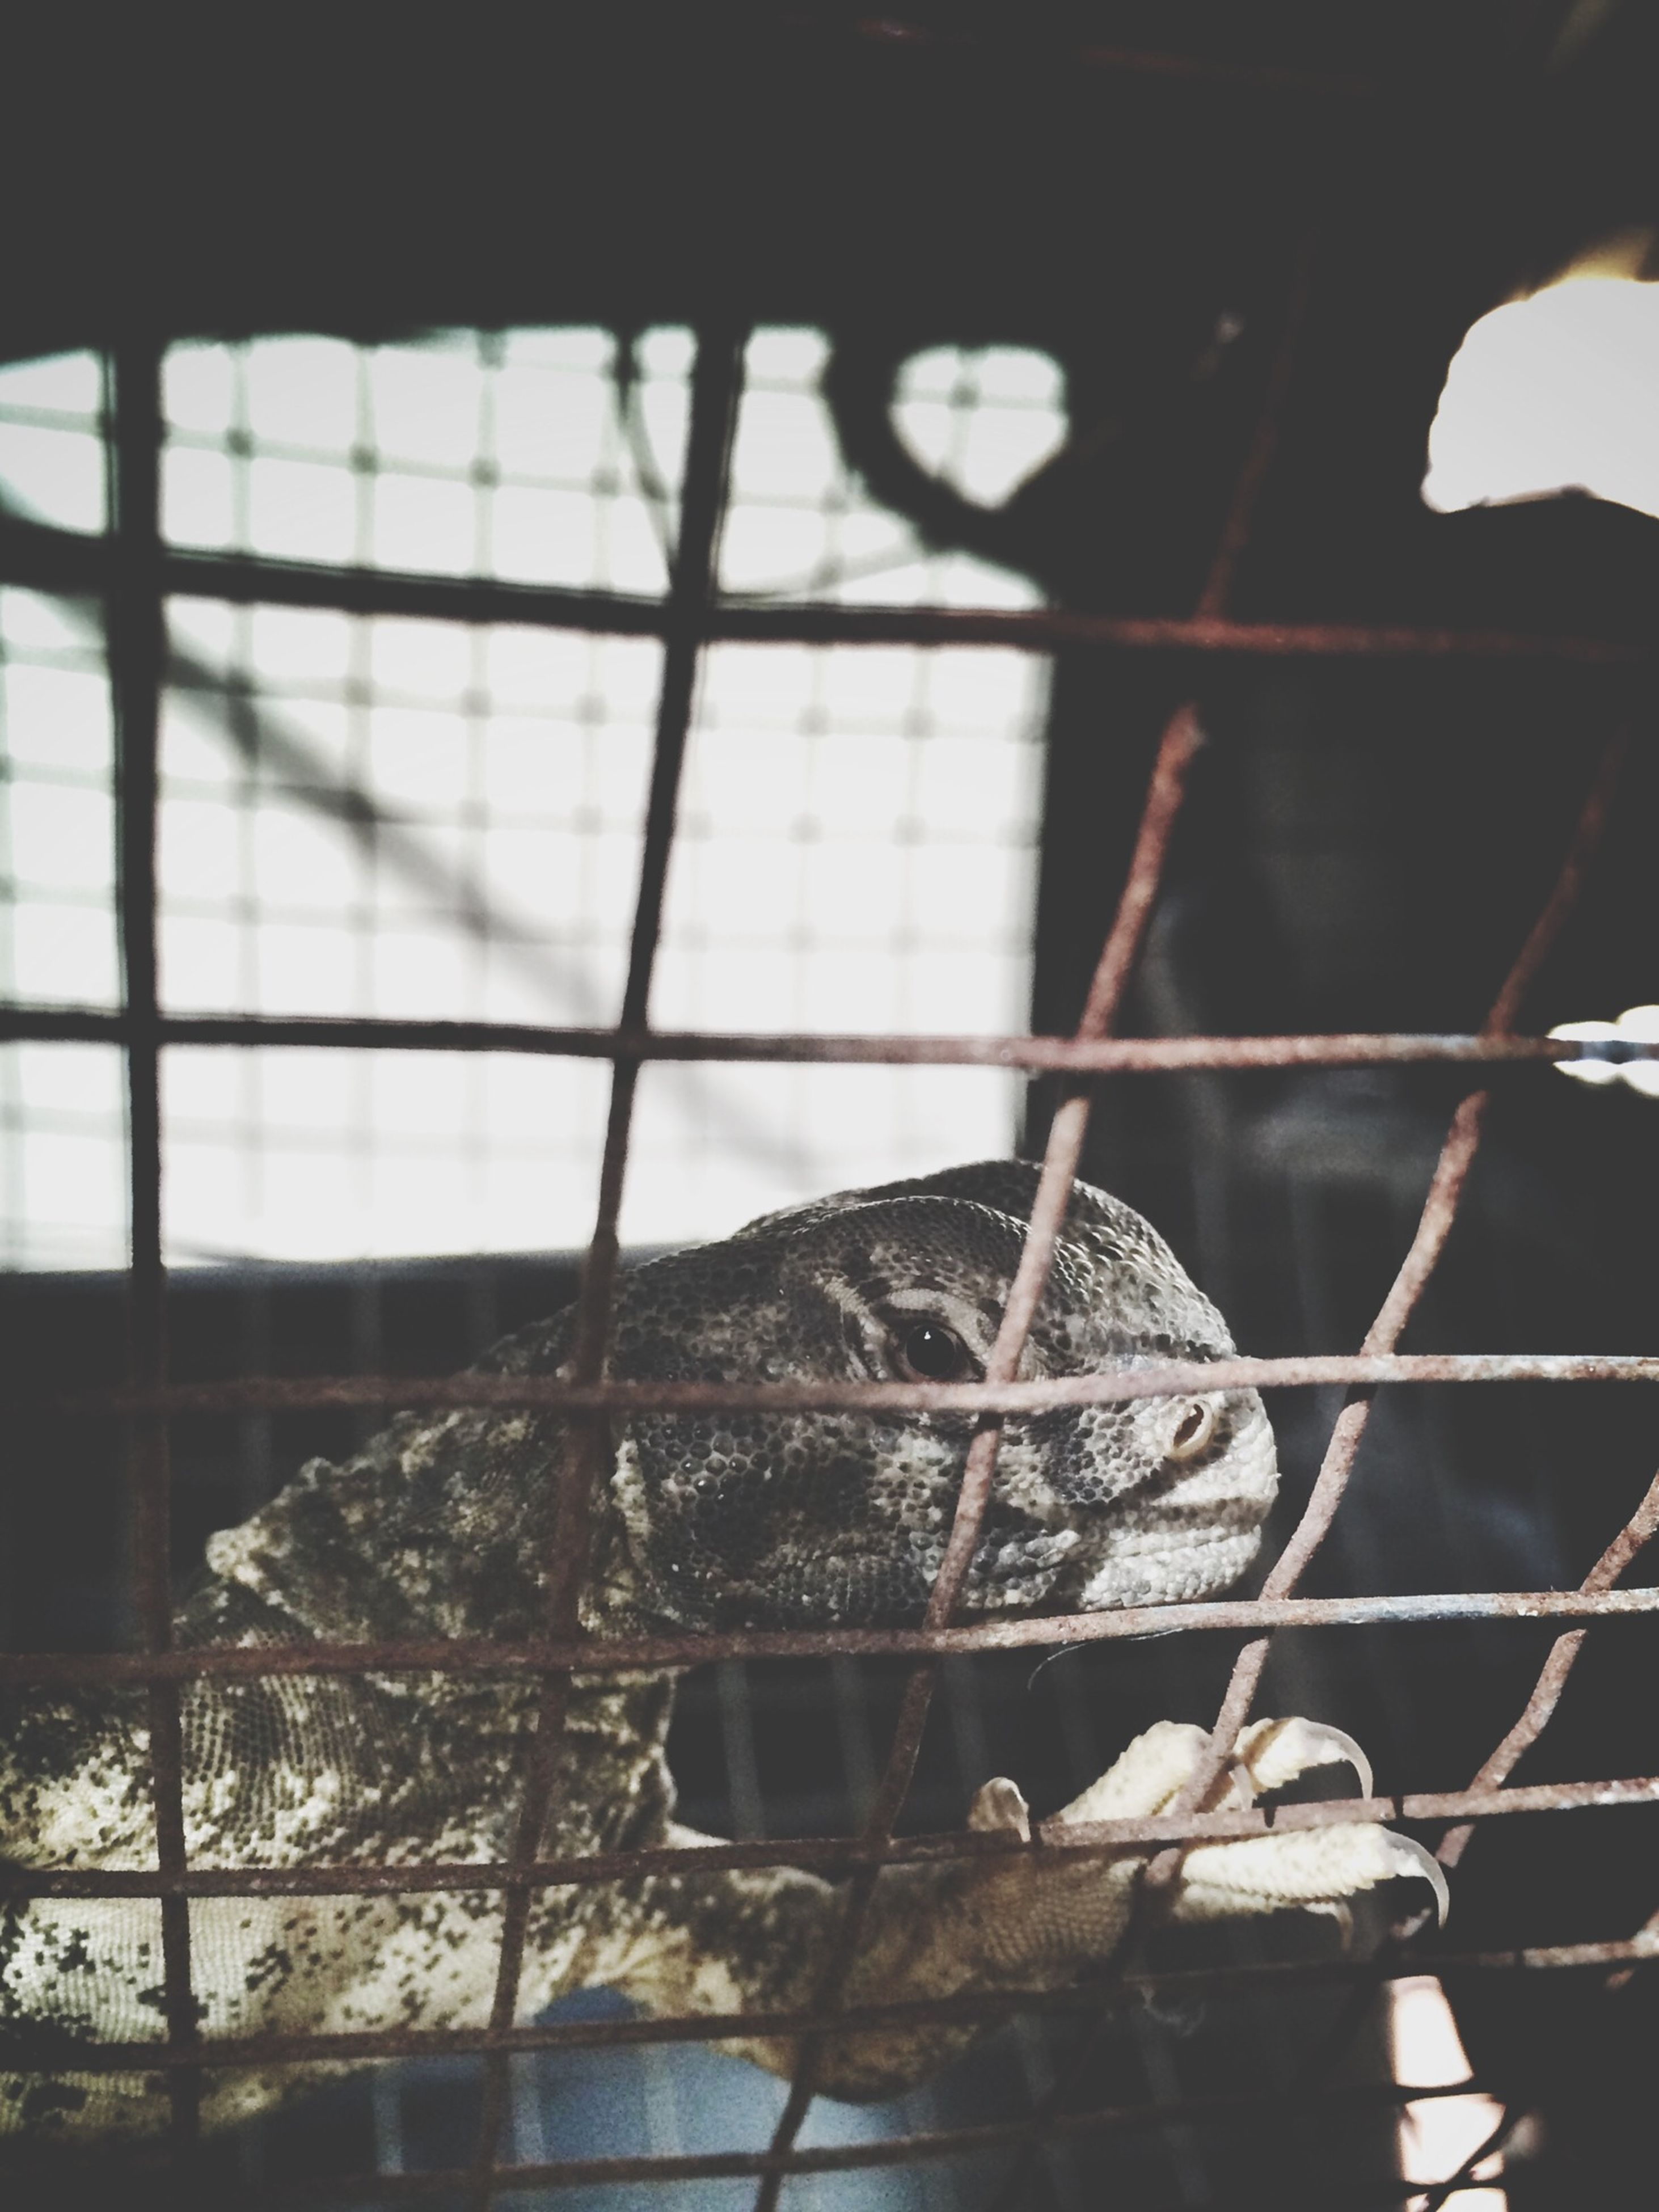 indoors, metal, close-up, metal grate, window, fence, focus on foreground, pattern, metallic, abandoned, damaged, day, no people, built structure, chainlink fence, cage, glass - material, broken, wall - building feature, old